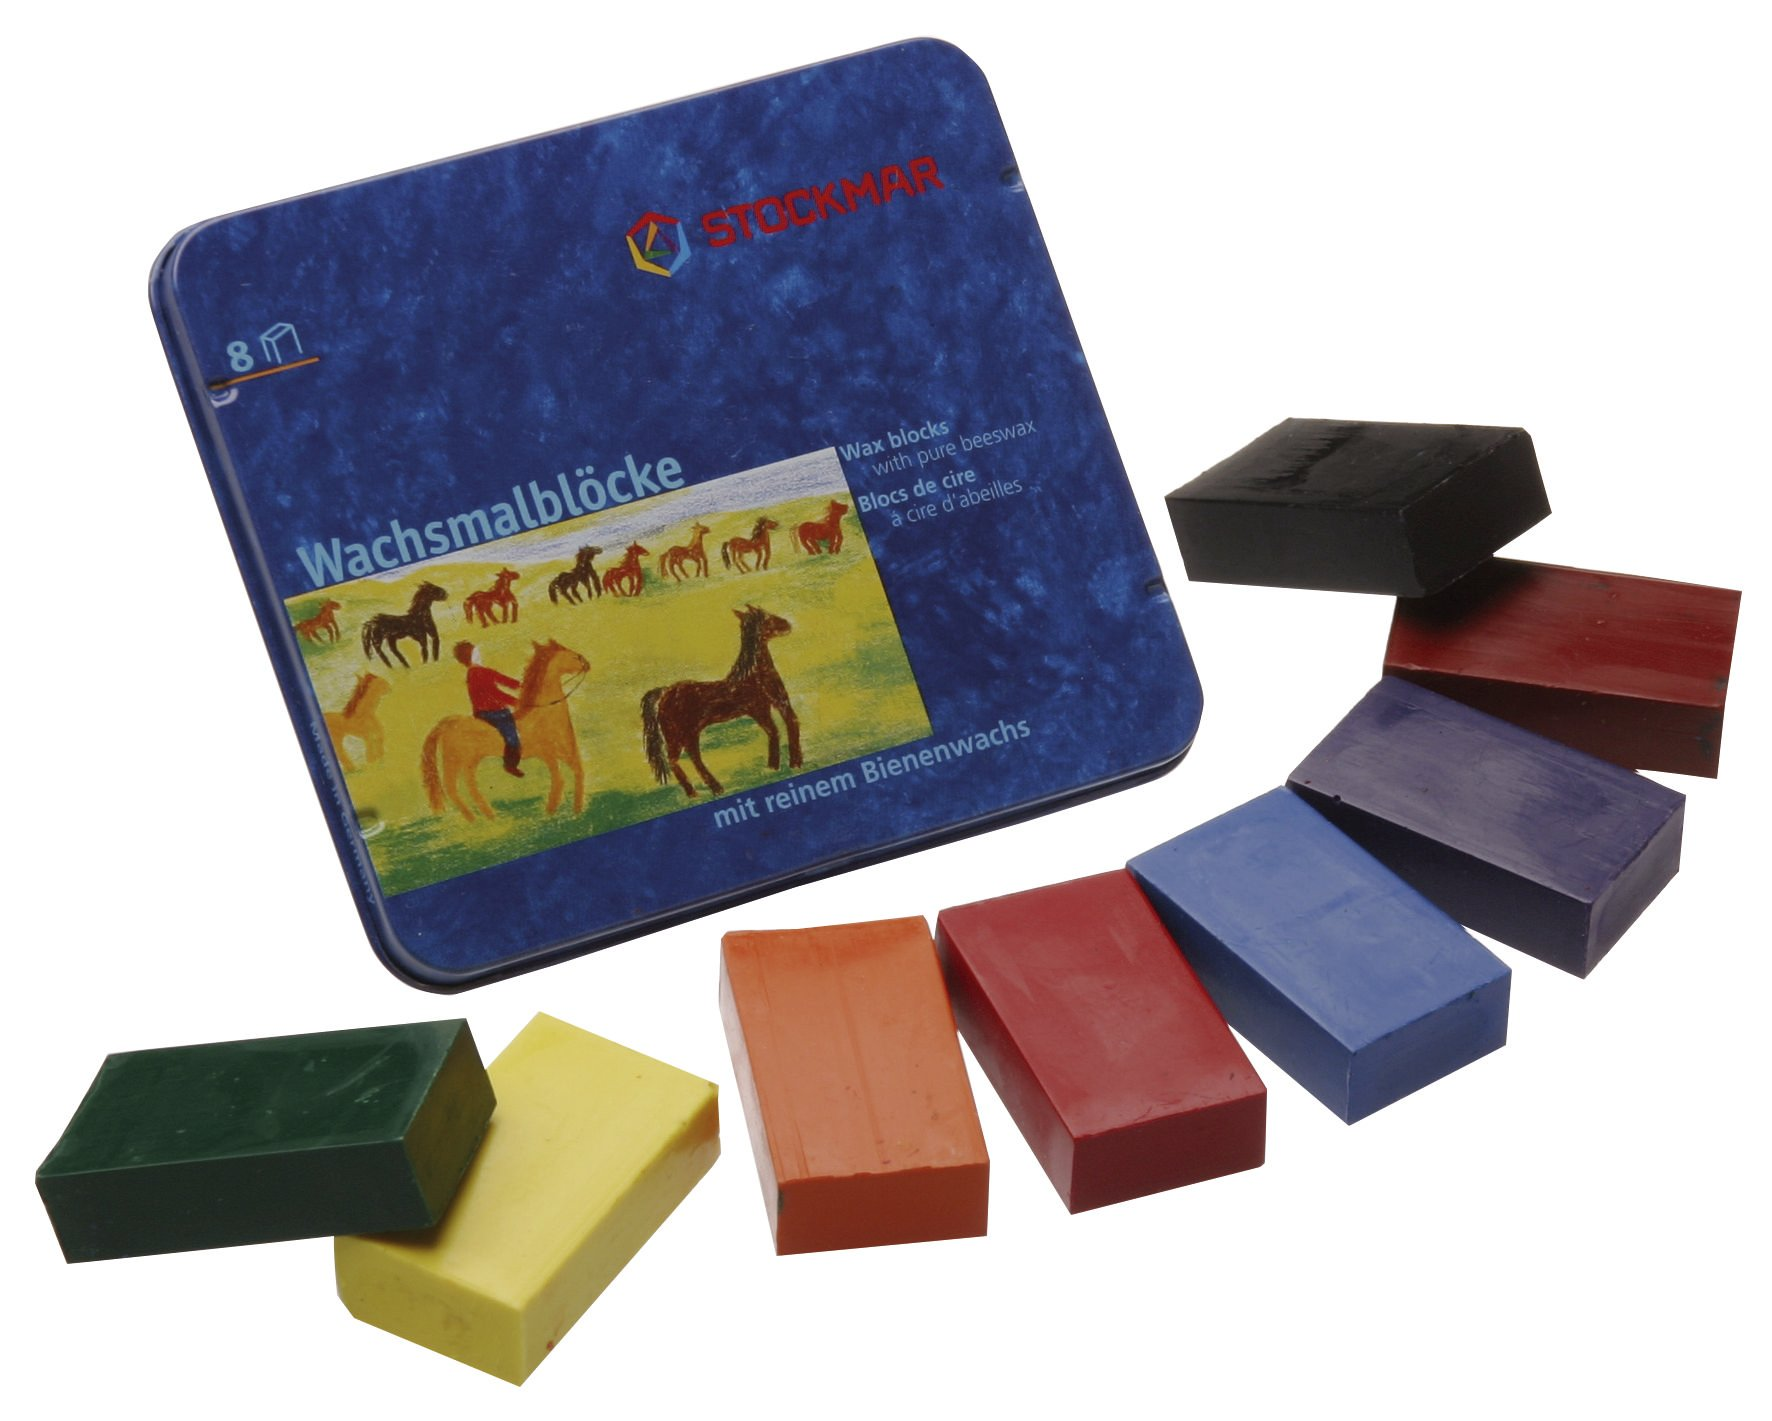 Stockmar Beeswax Block Crayons - 8 Standard Colours in a Tin by Stockmar